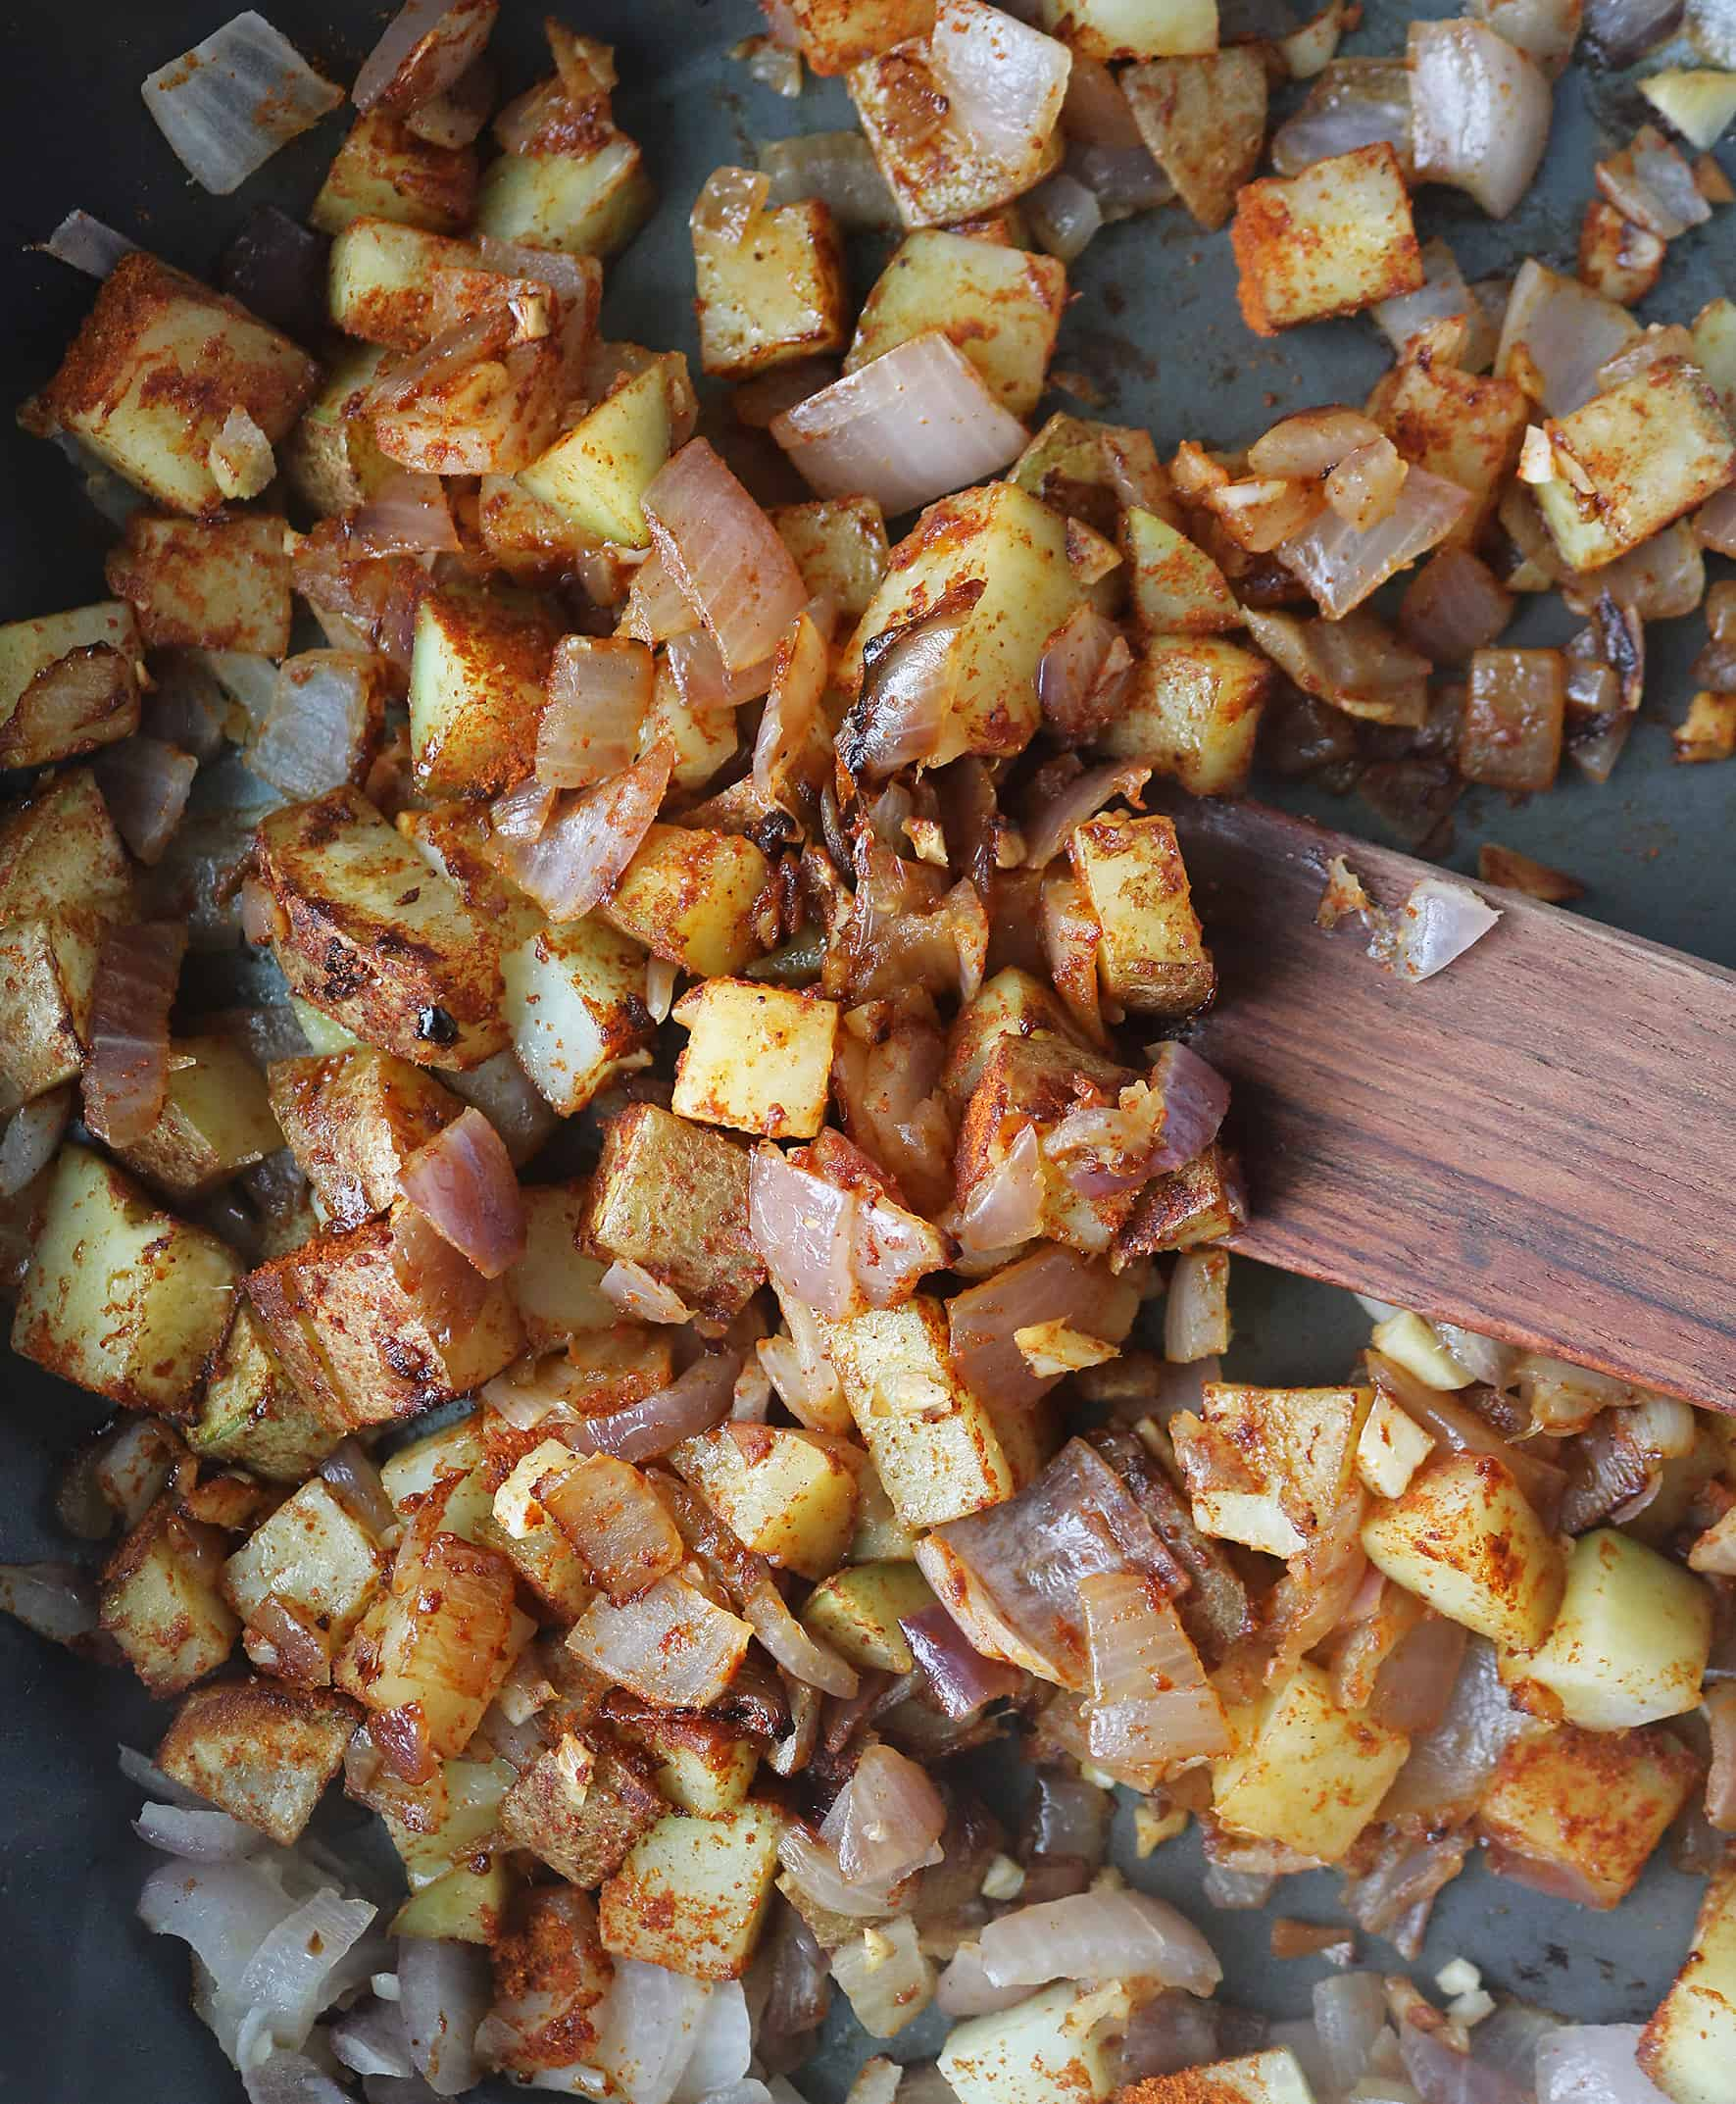 Cubed potatoes being sauteed with onions, garlic, ginger and Berbere seasoning.